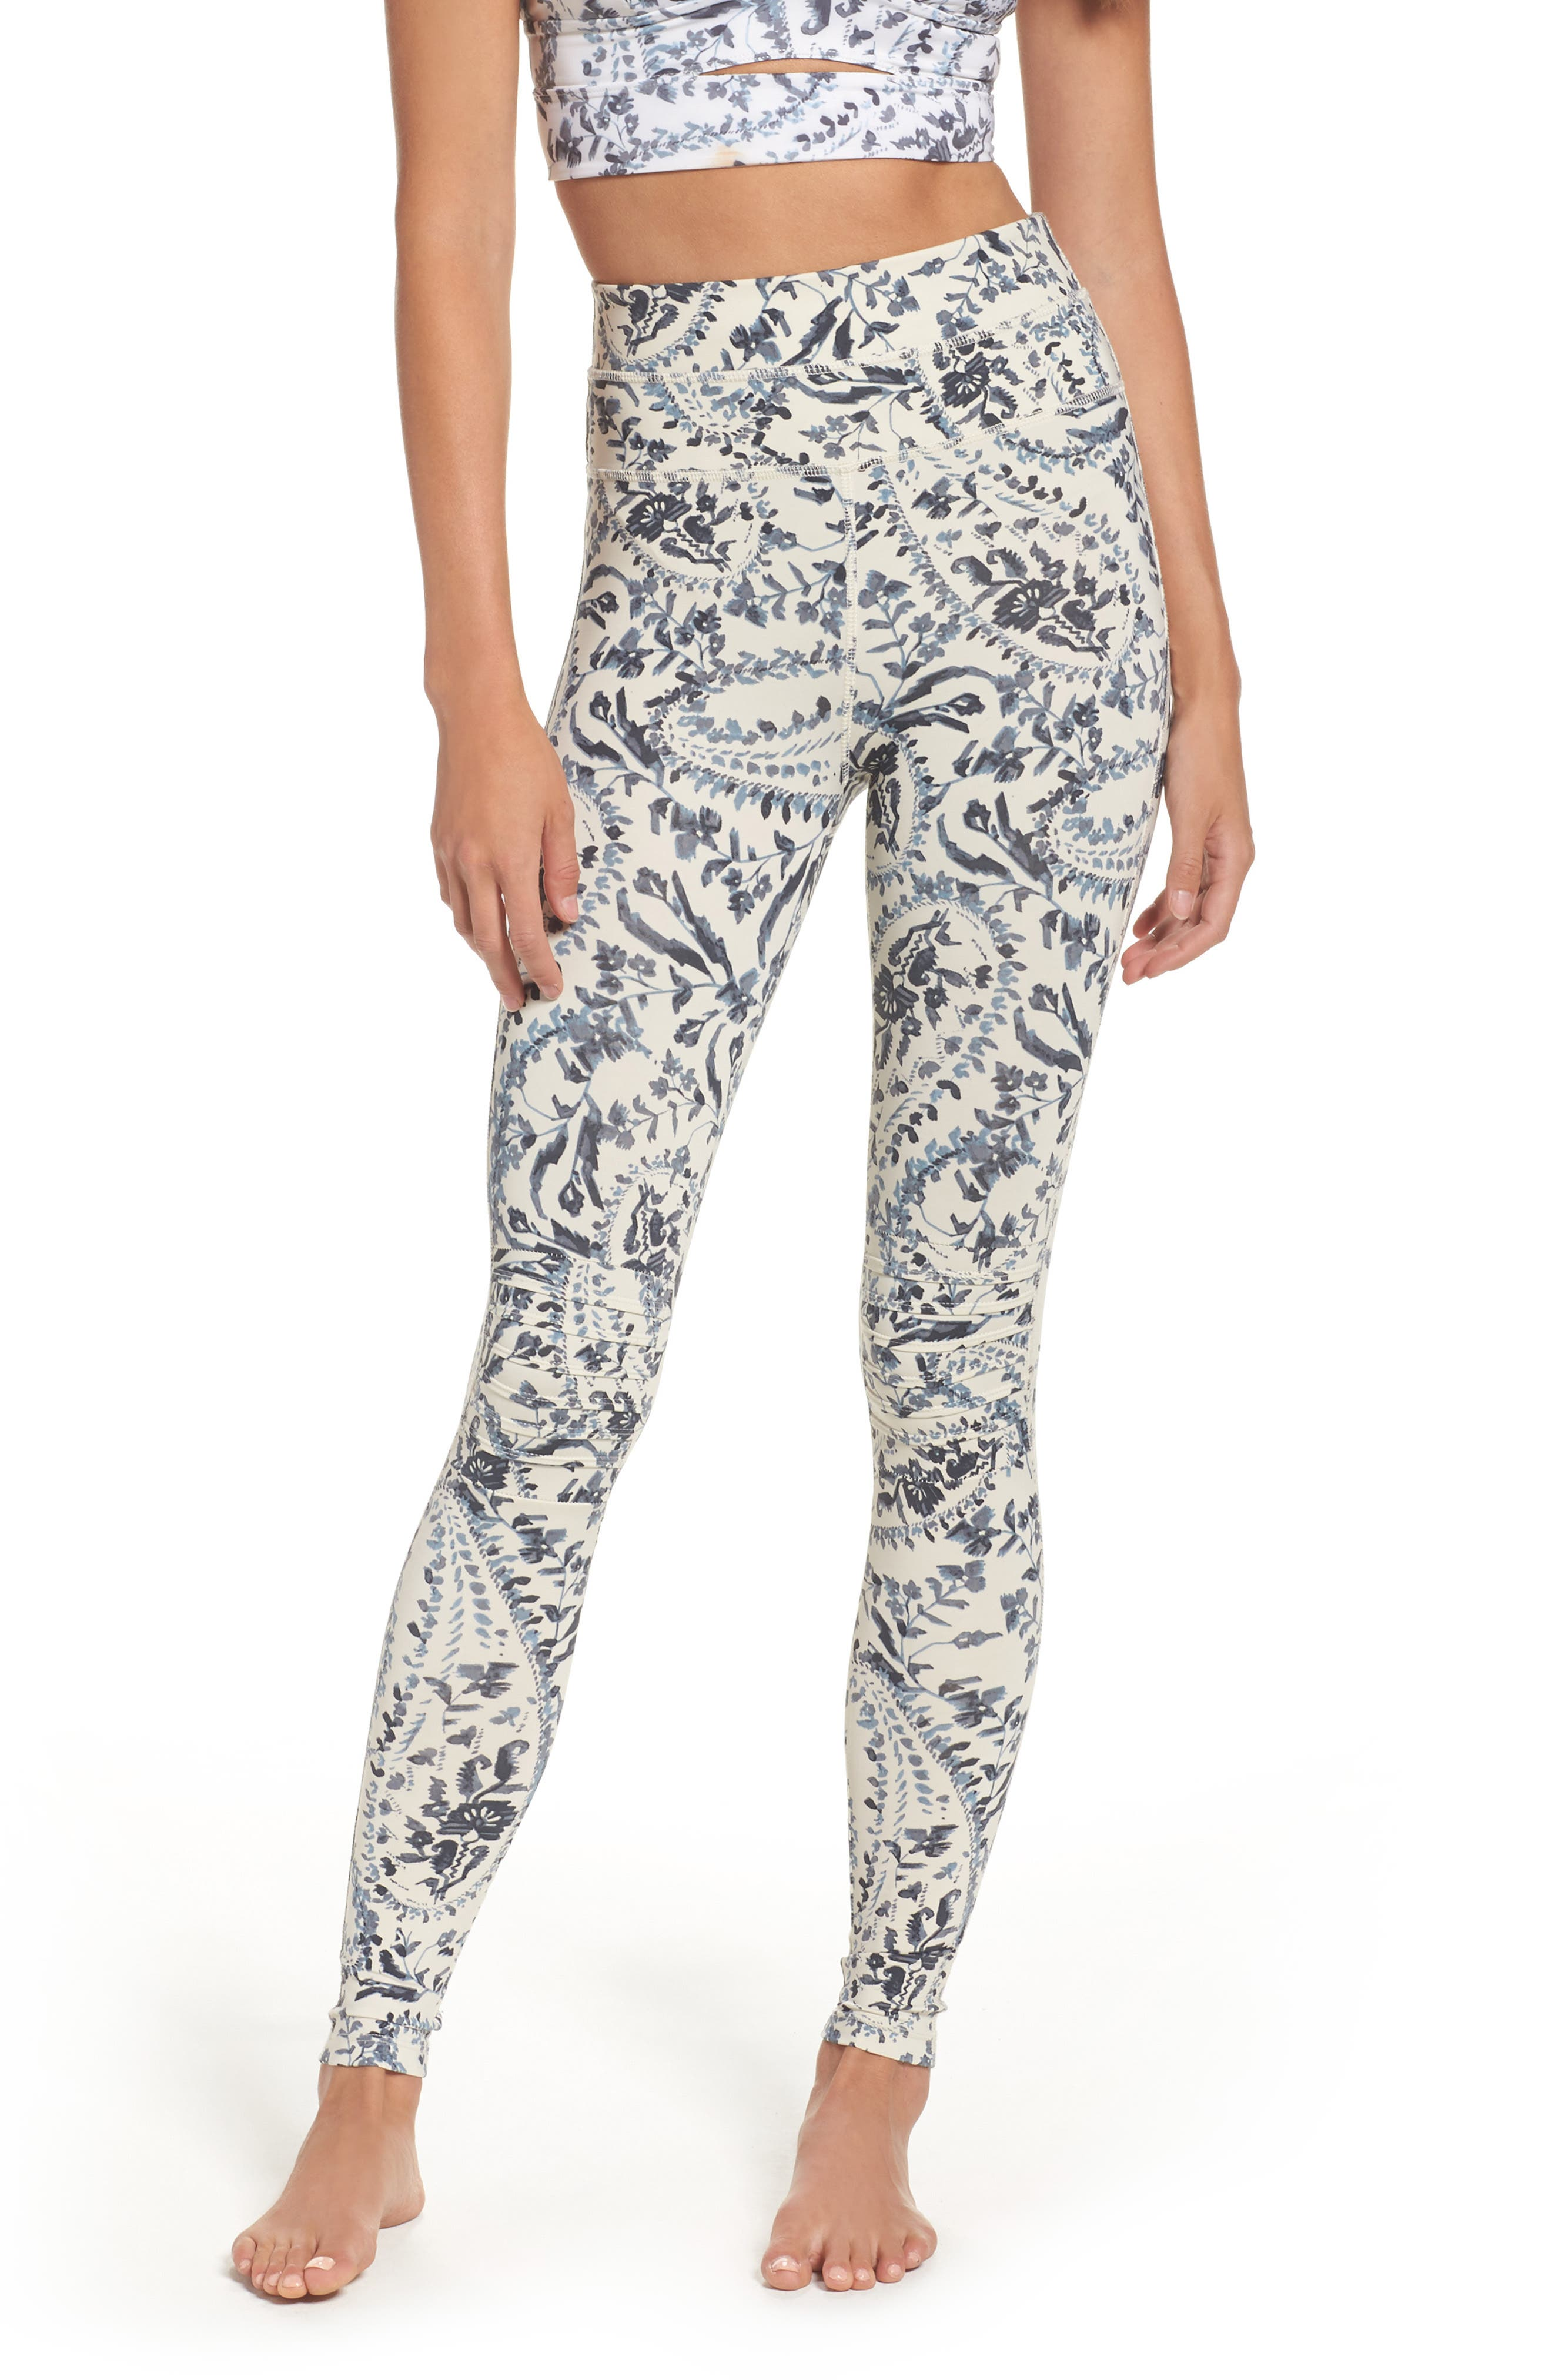 FP Movement Print City Slicker High Waist Leggings,                             Main thumbnail 1, color,                             400